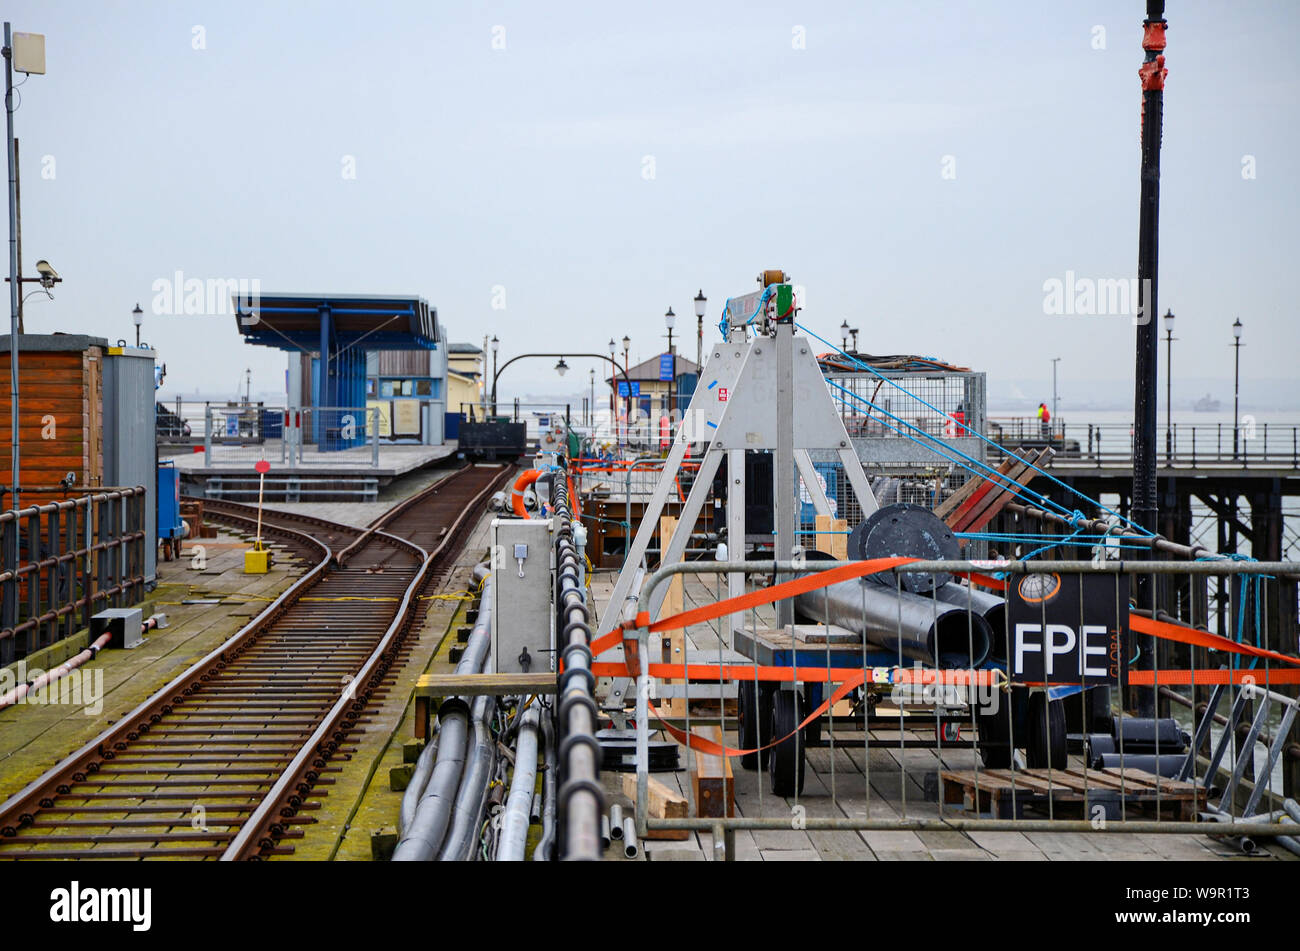 Repair work underway on Southend Pier after it was hit by a barge in bad weather. Construction. Repairs. Damaged. Closed. Space for copy Stock Photo